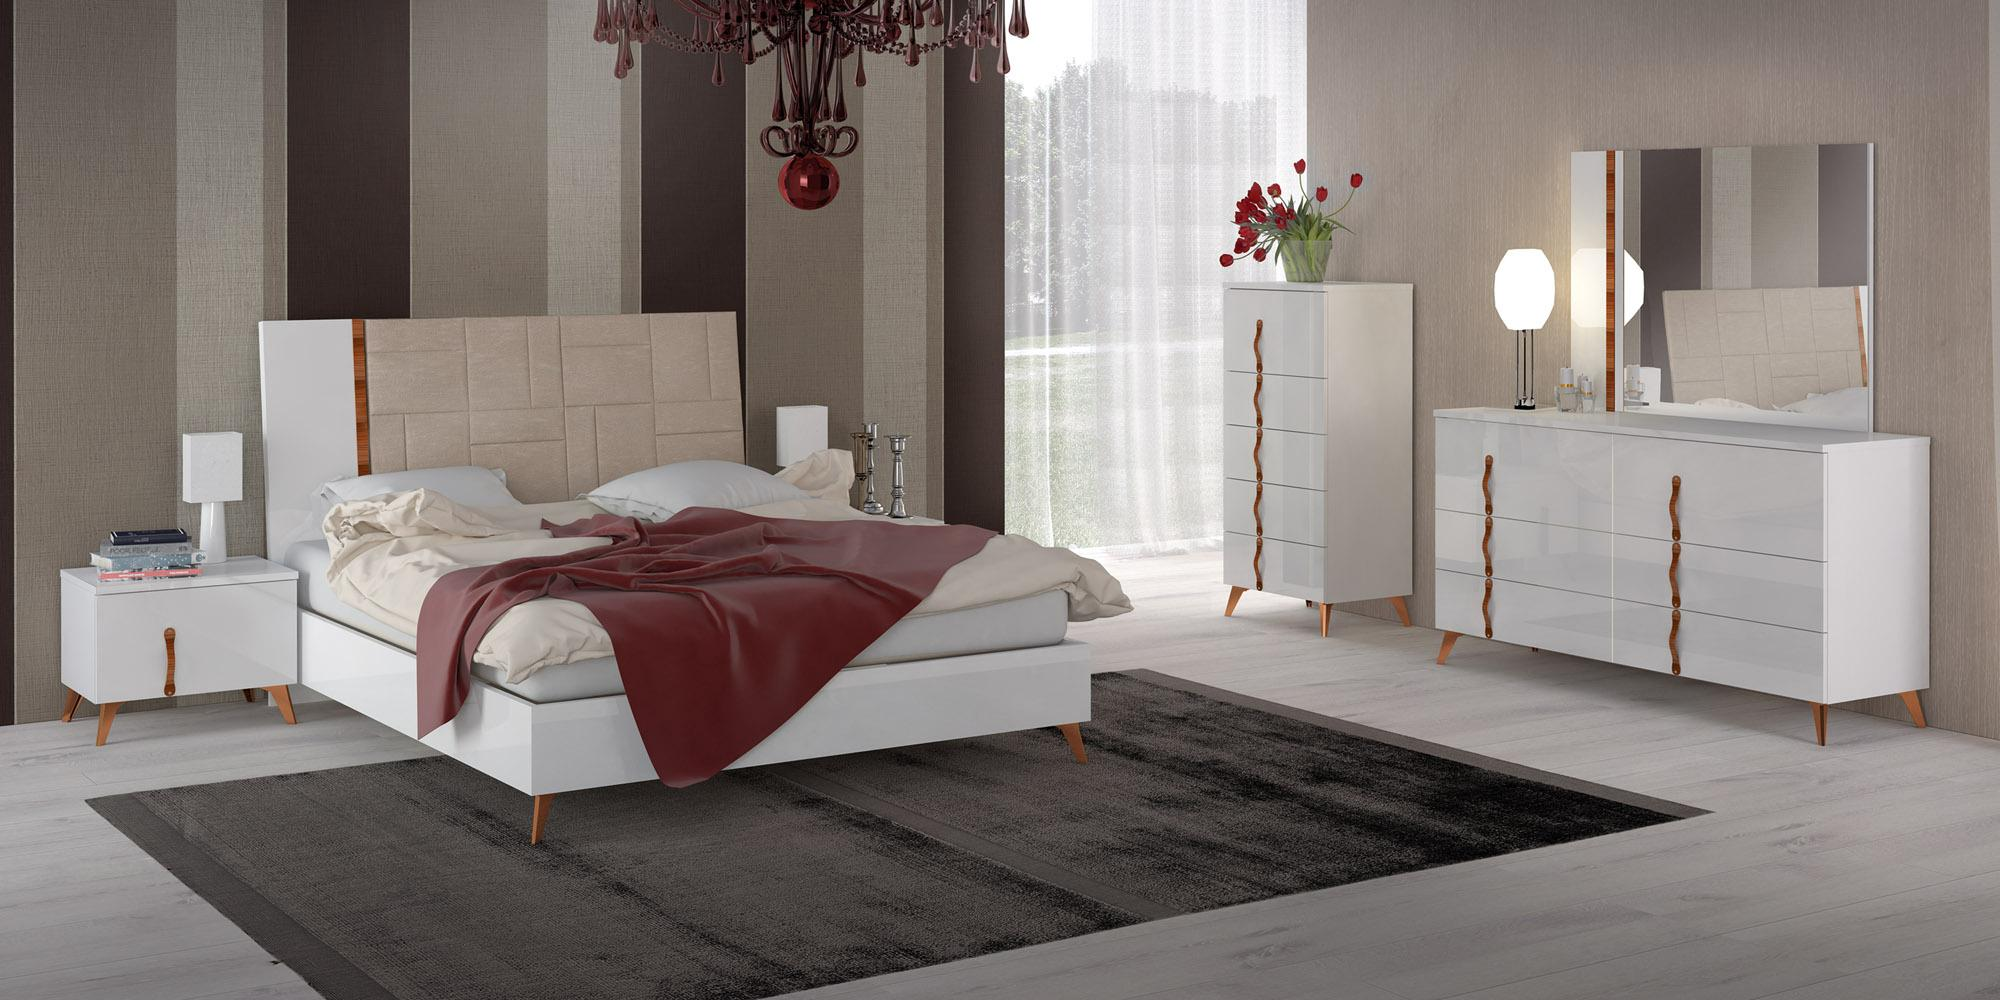 captivating italian contemporary bedroom sets | Made in Italy Leather Elite Modern Bedroom Sets with Extra ...